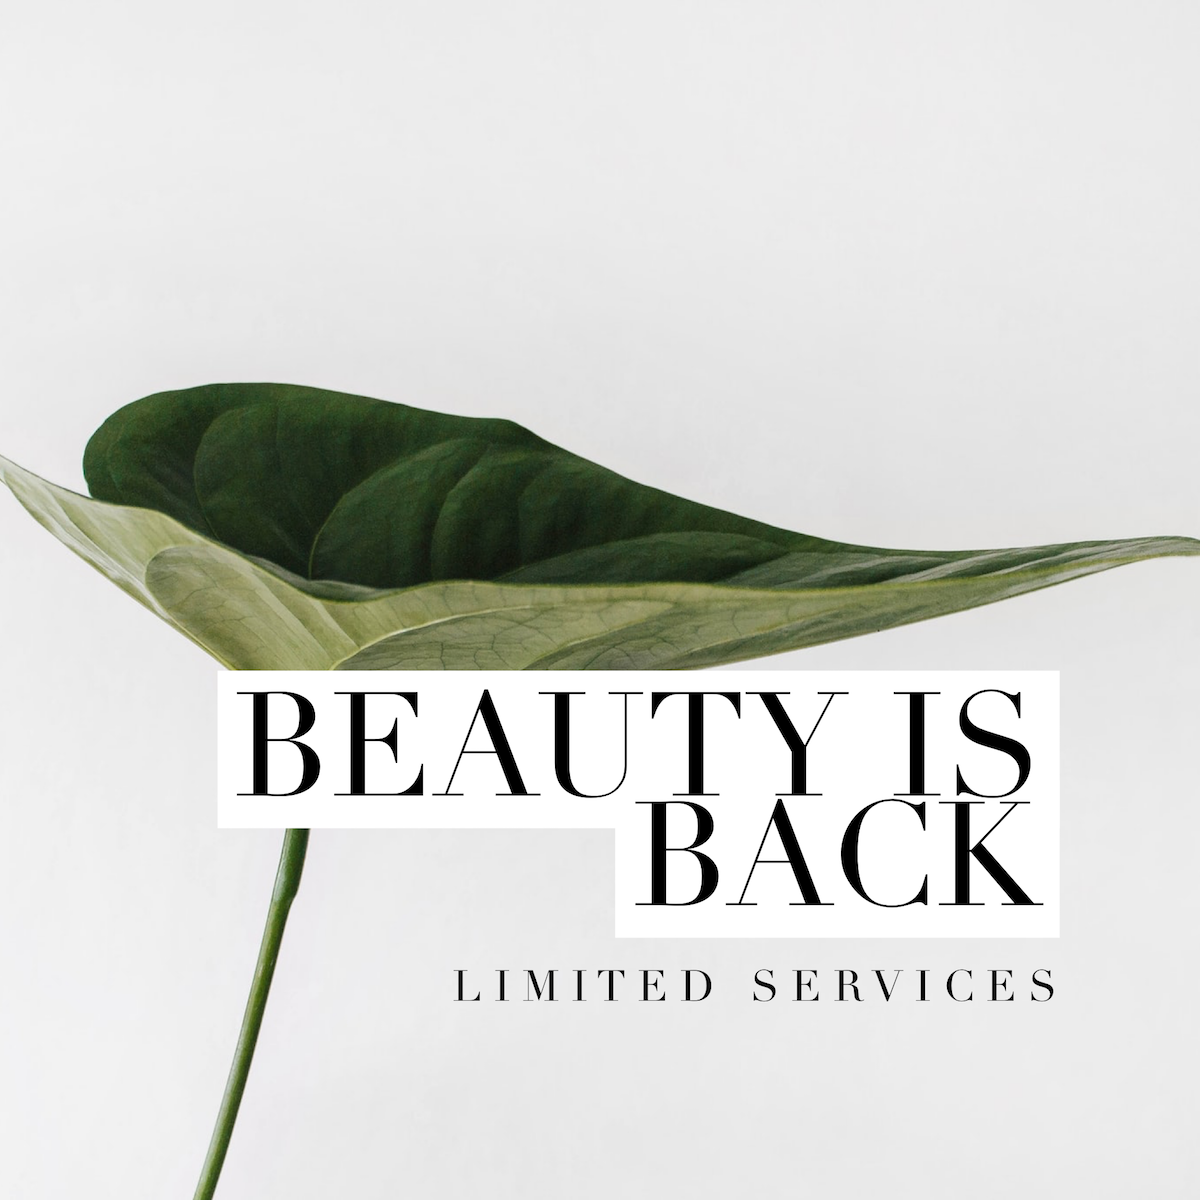 Beauty is BACK! Limited Services Available from Monday 13th July